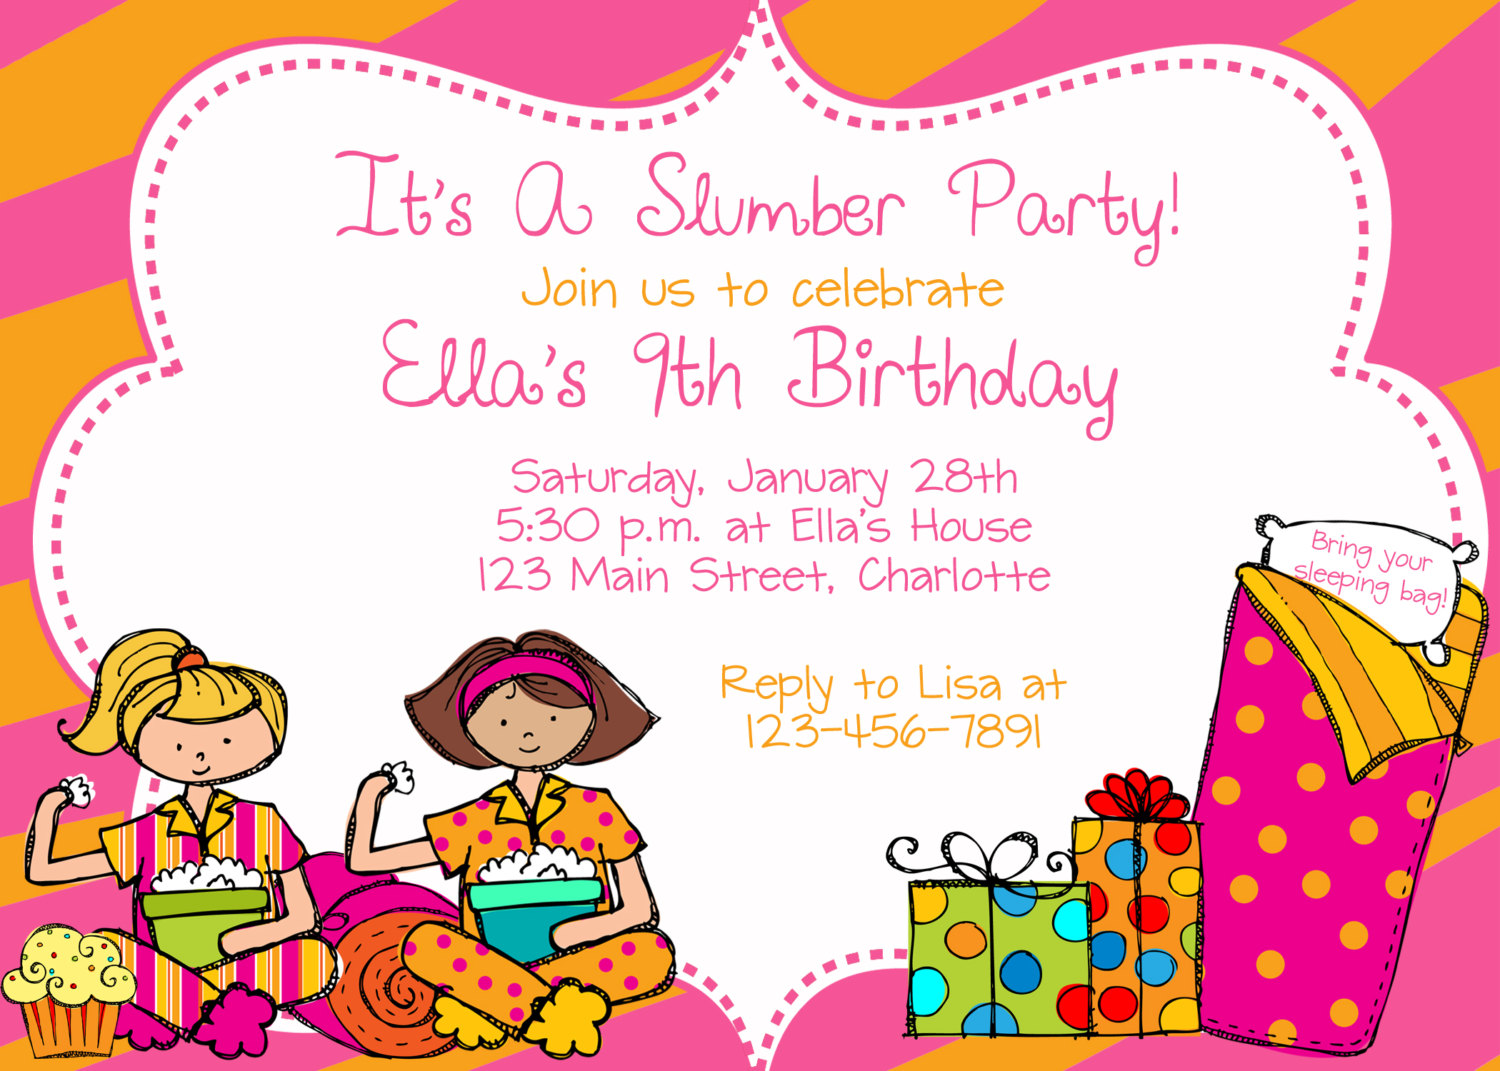 Slumber party birthday party invitation by TheButterflyPress